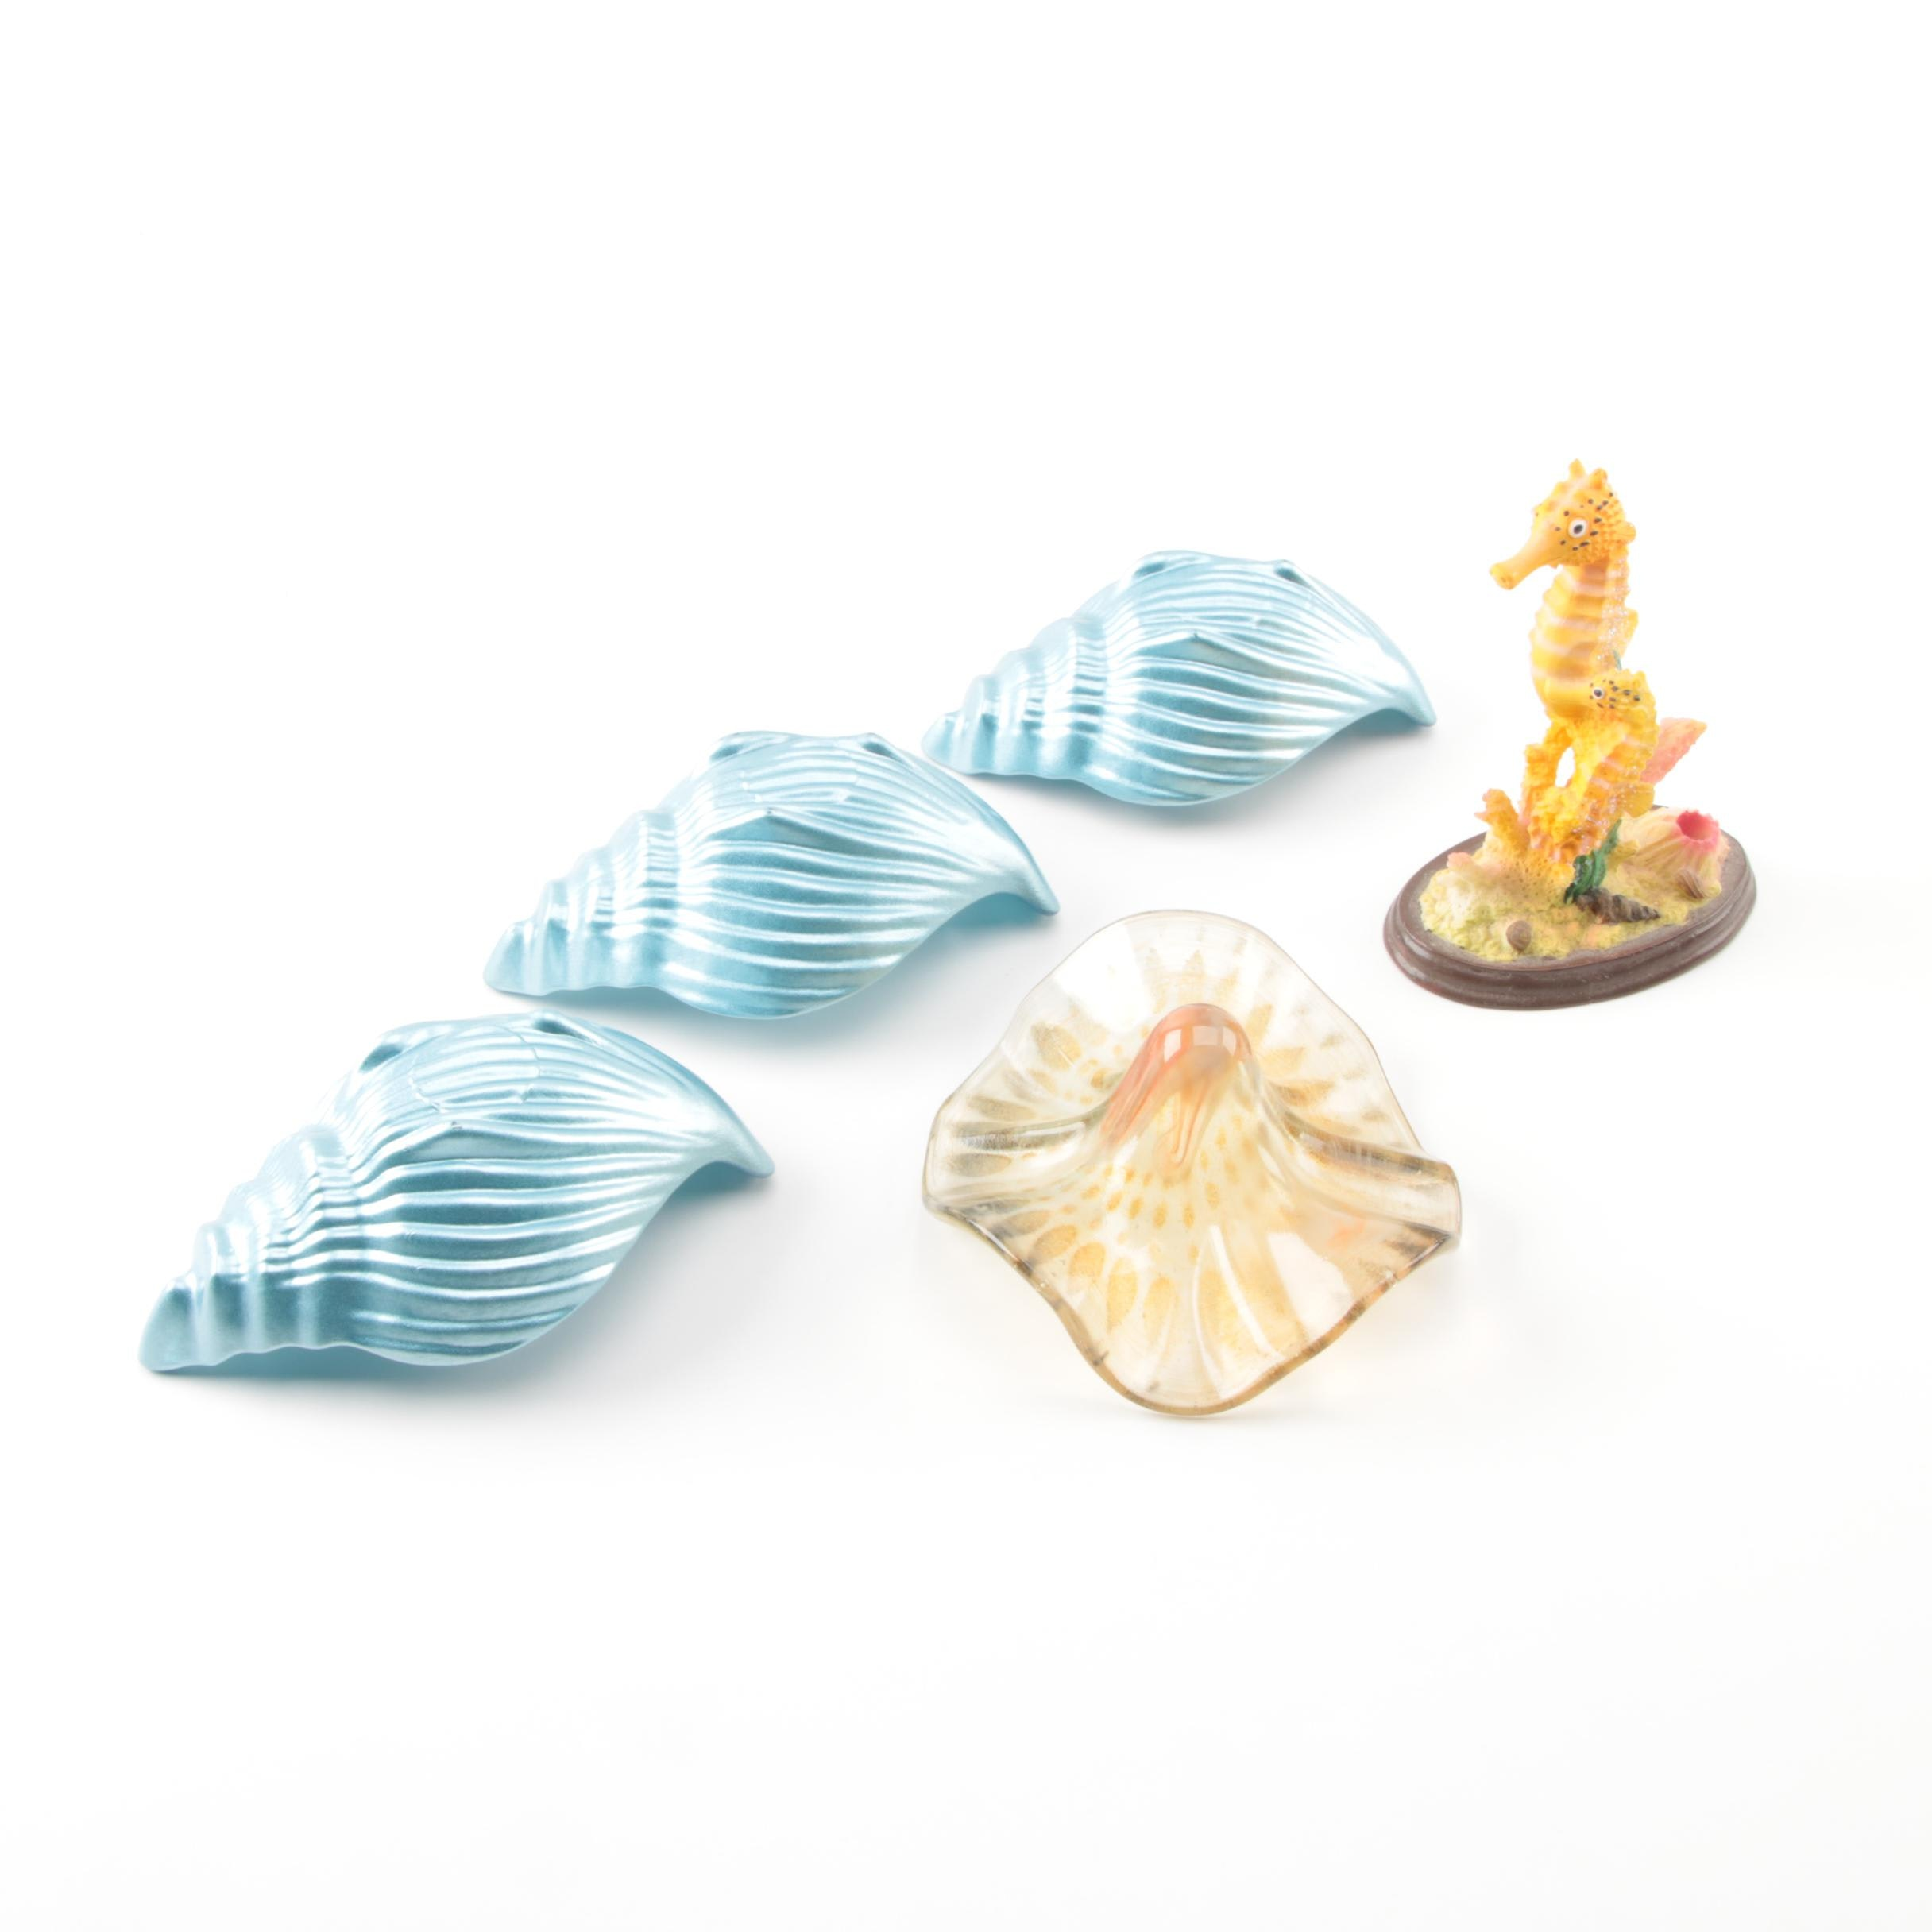 Shell and Seahorse Decorative Figures